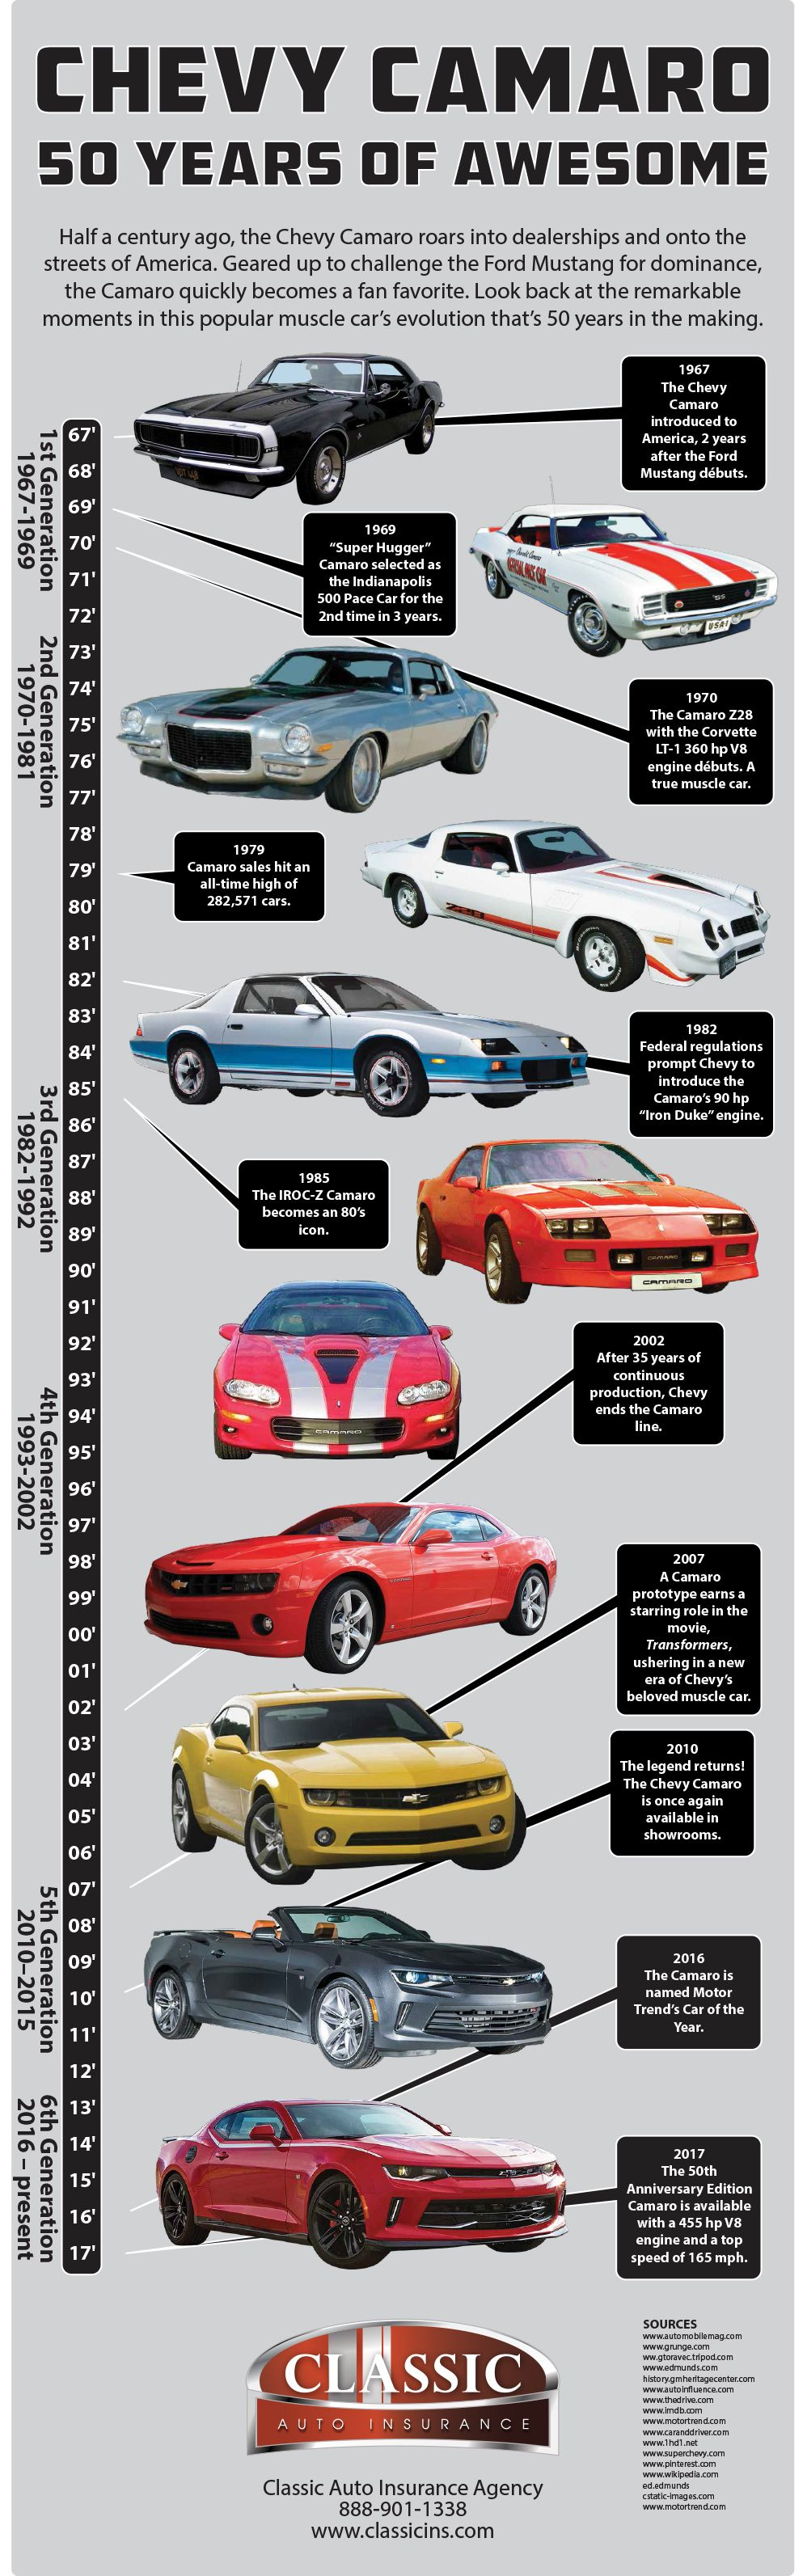 Chevy Camaro Classic American Muscle Car Turns 50 Cars 67 Wiring Diagram Engine C Apartment